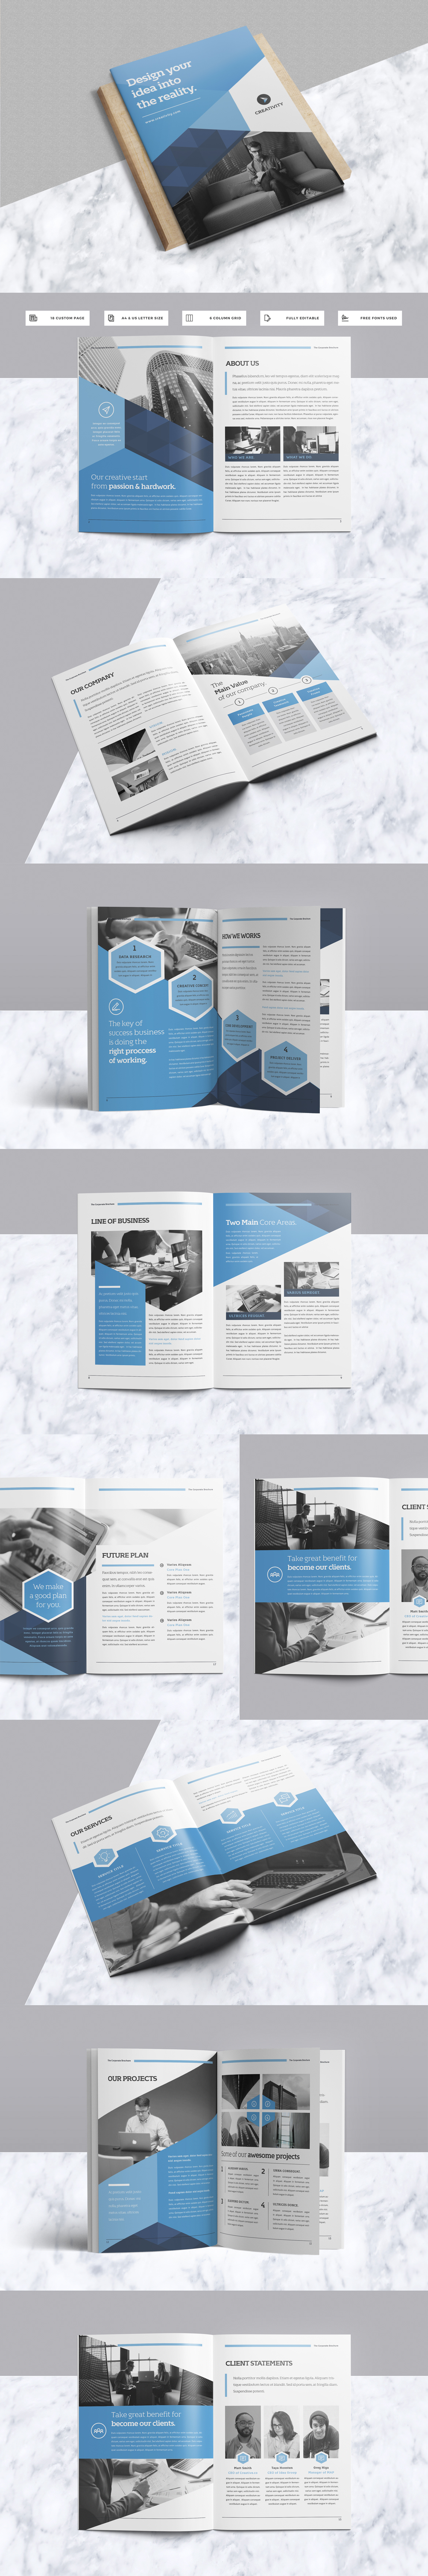 Modern & Professional Brochure 18 Pages Template InDesign INDD ...